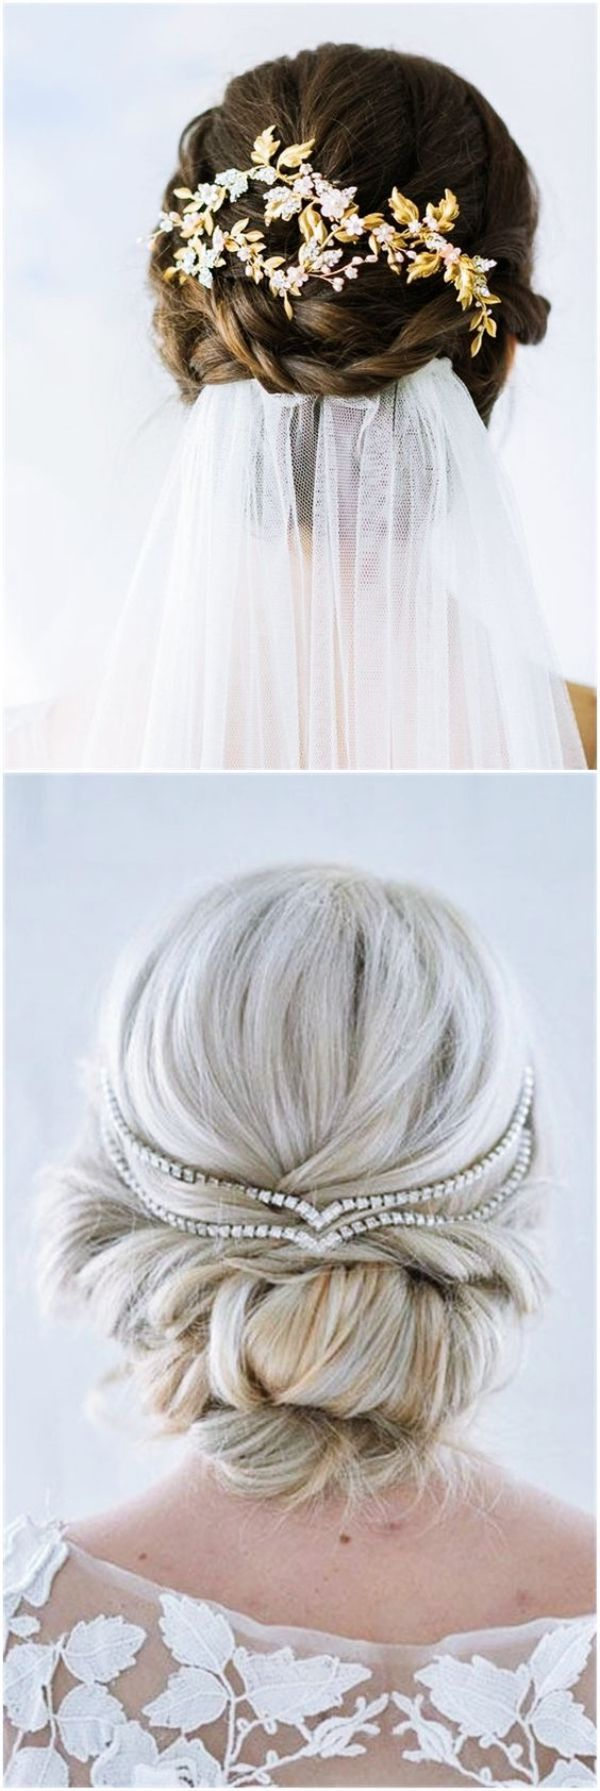 139 best Gorgeous wedding hairstyles images on Pinterest